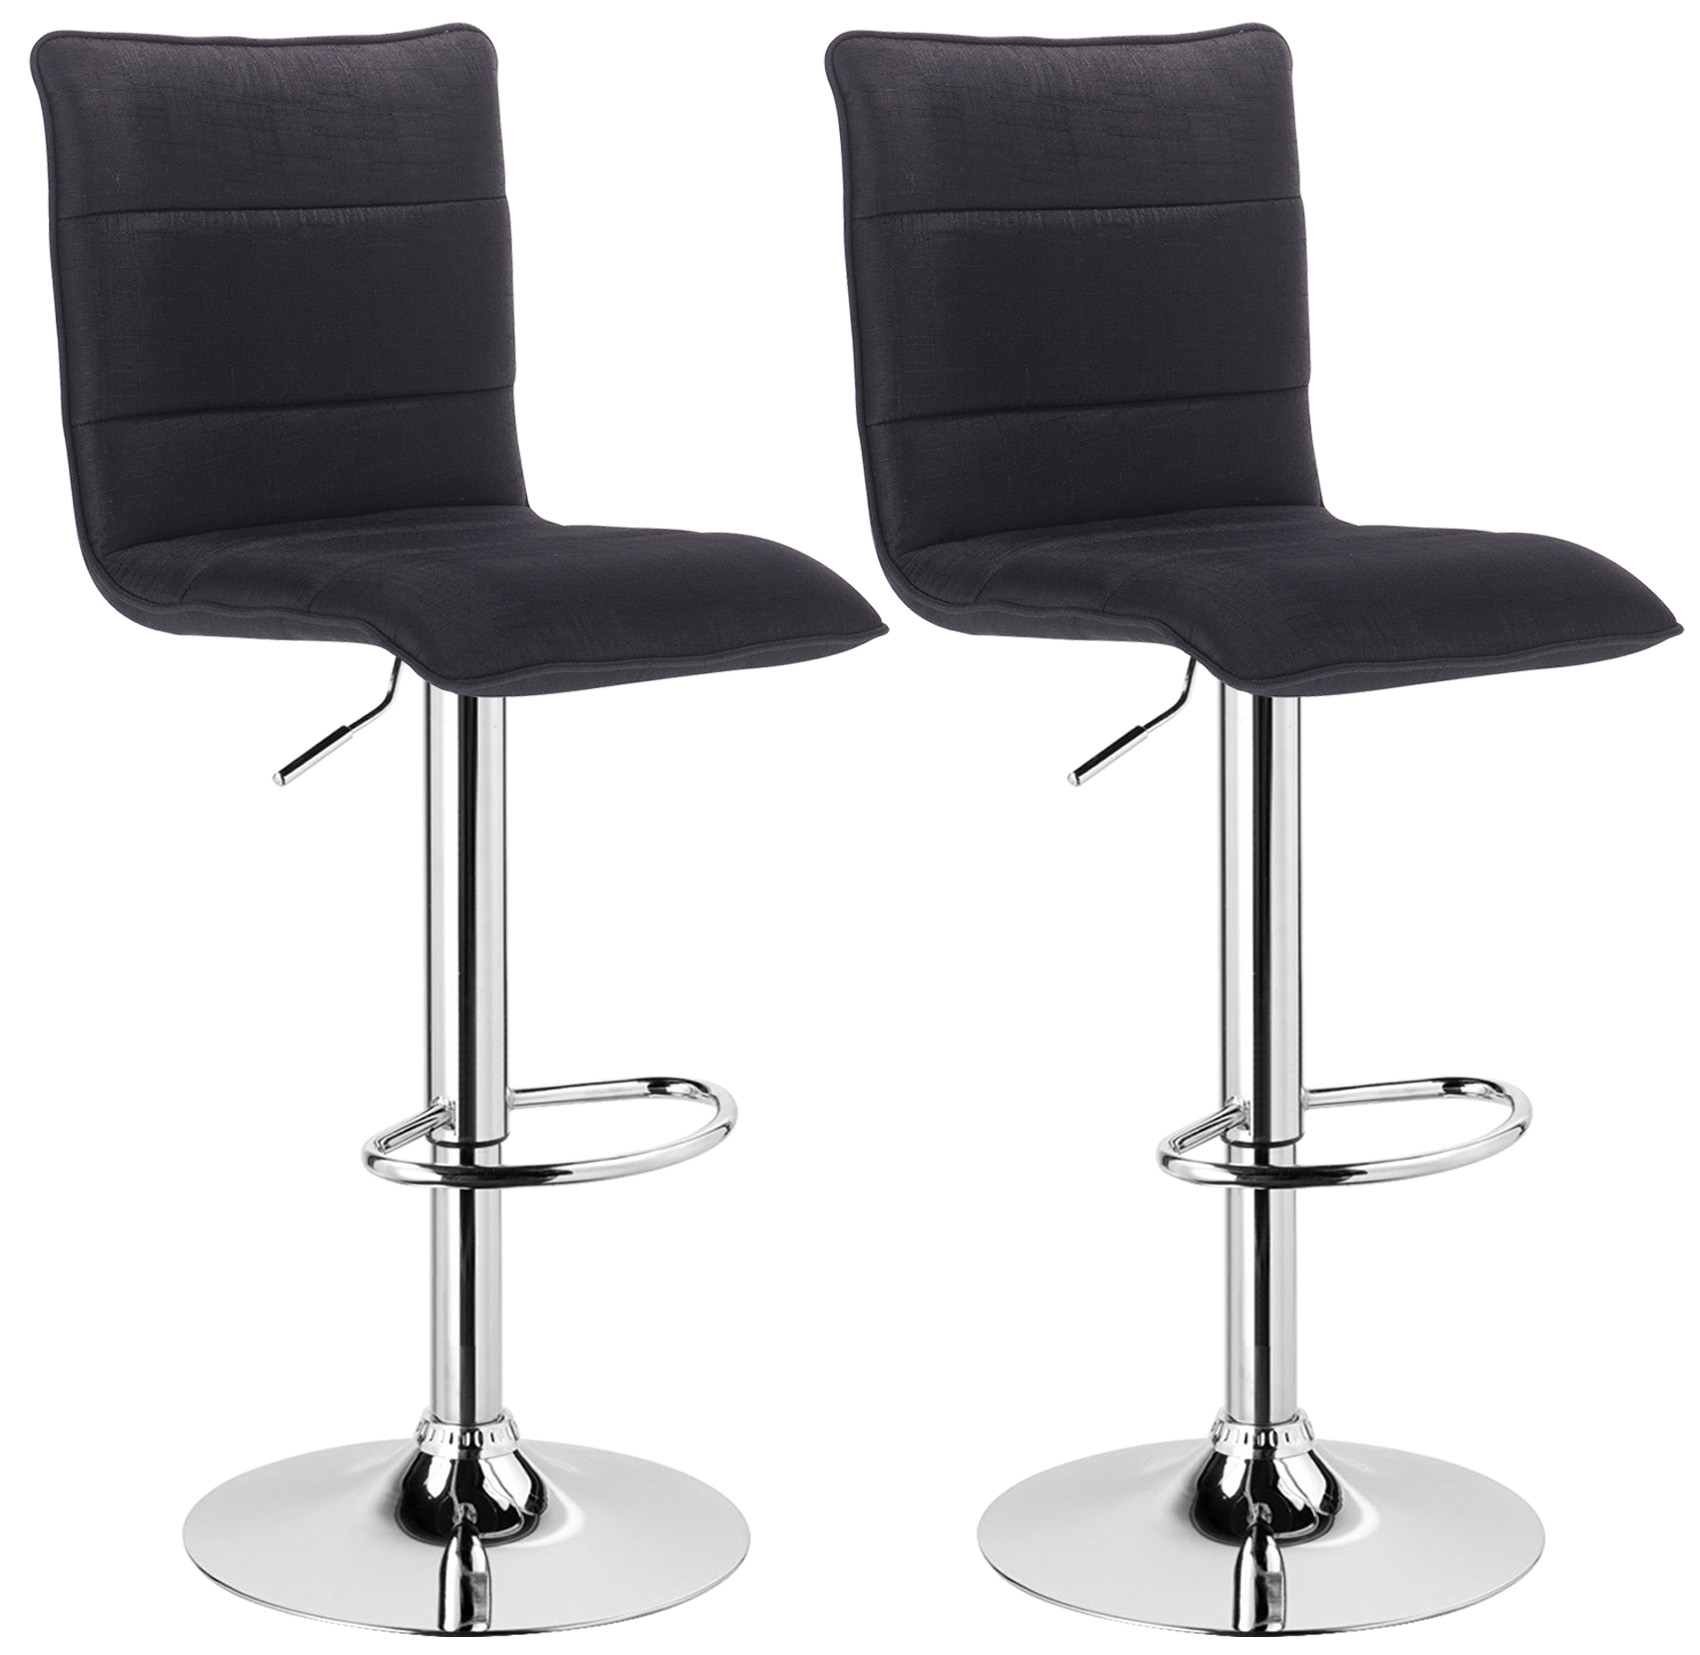 lot de 2 tabouret de bar avec poign e en pu tissu chaise cuisine r glable f008 ebay. Black Bedroom Furniture Sets. Home Design Ideas